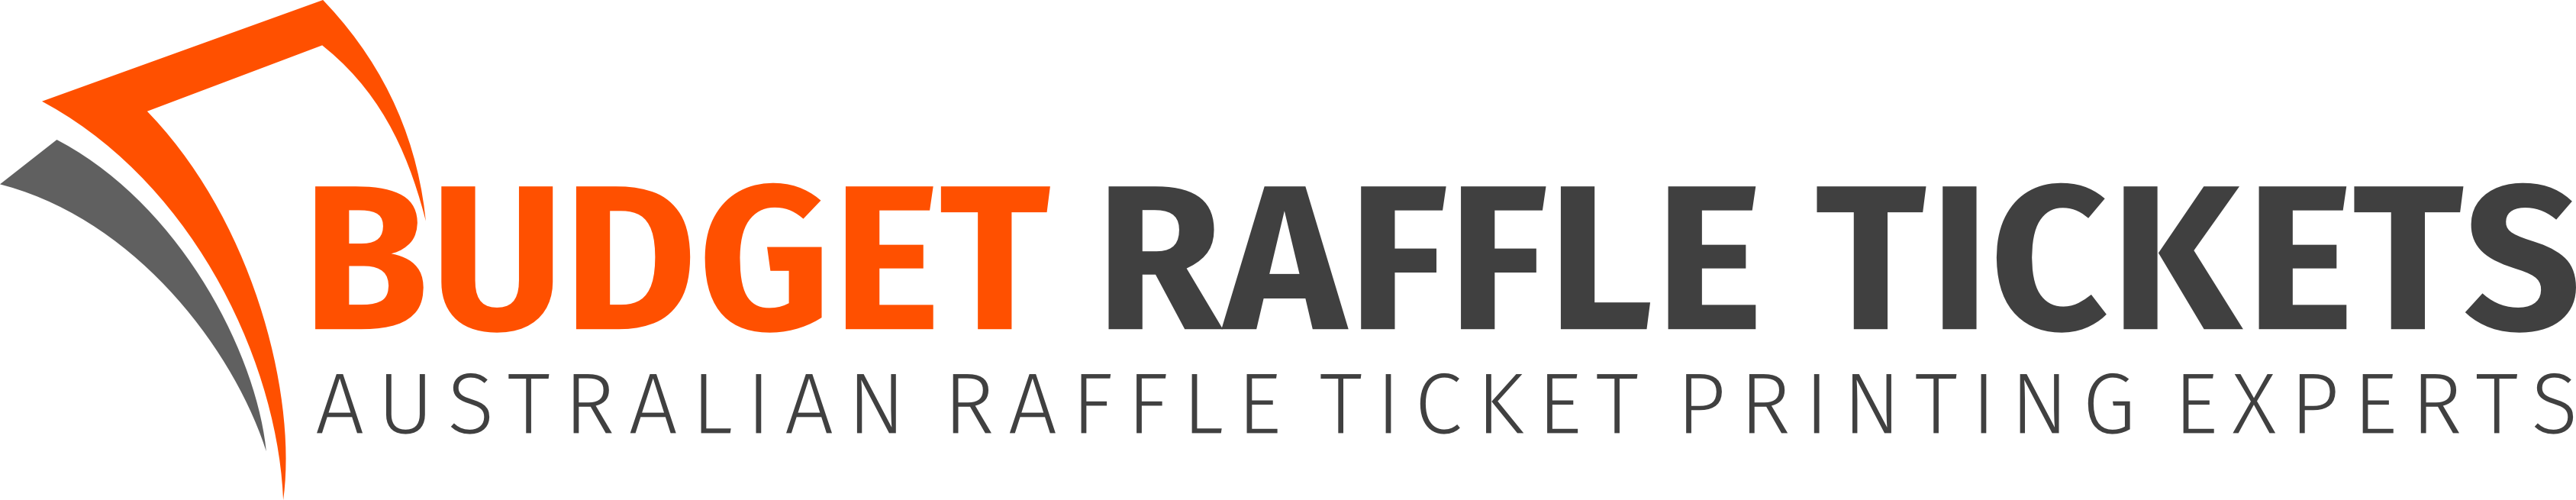 Budget Raffle Tickets